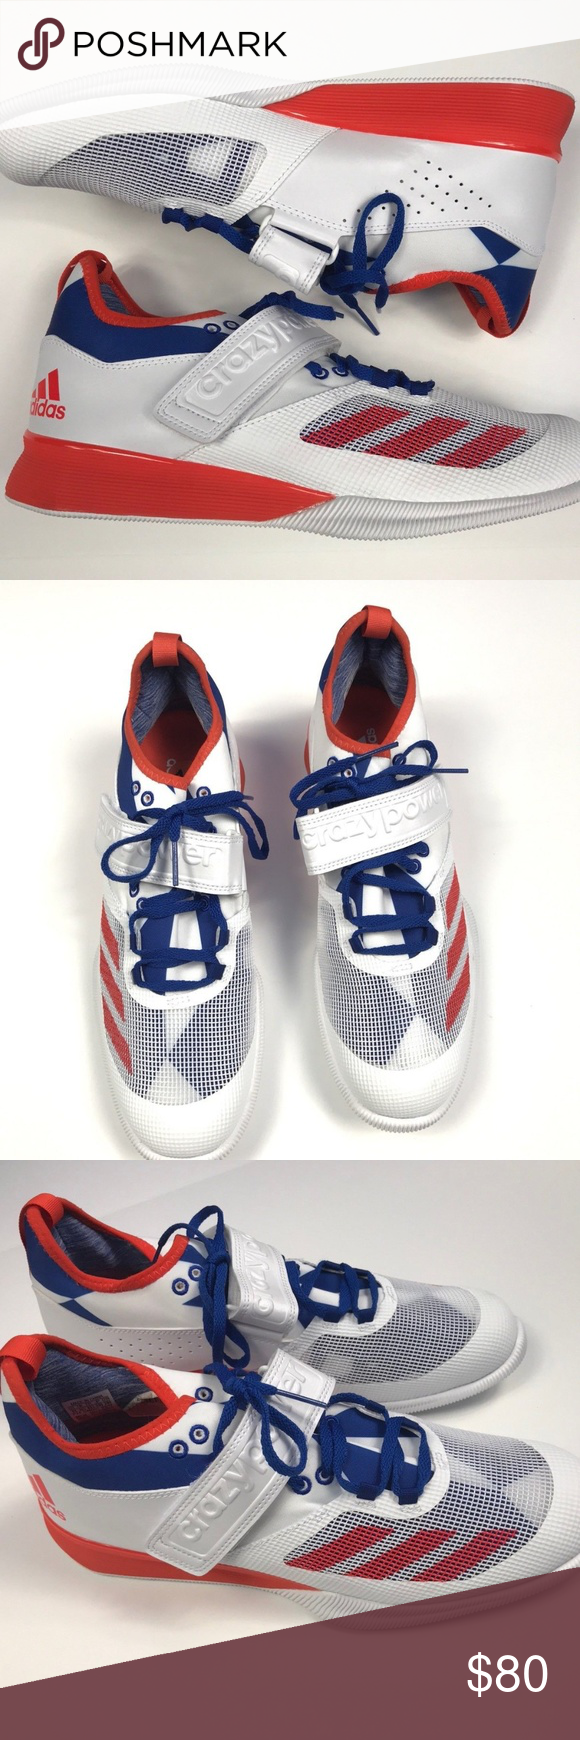 brand new 39da6 fae51 Adidas Crazy Power Trainer Weightlifting Shoes Crazy Power WhiteRedBlue   BA9170 Maximise performance from the bench to the bar in these mens weight  ...